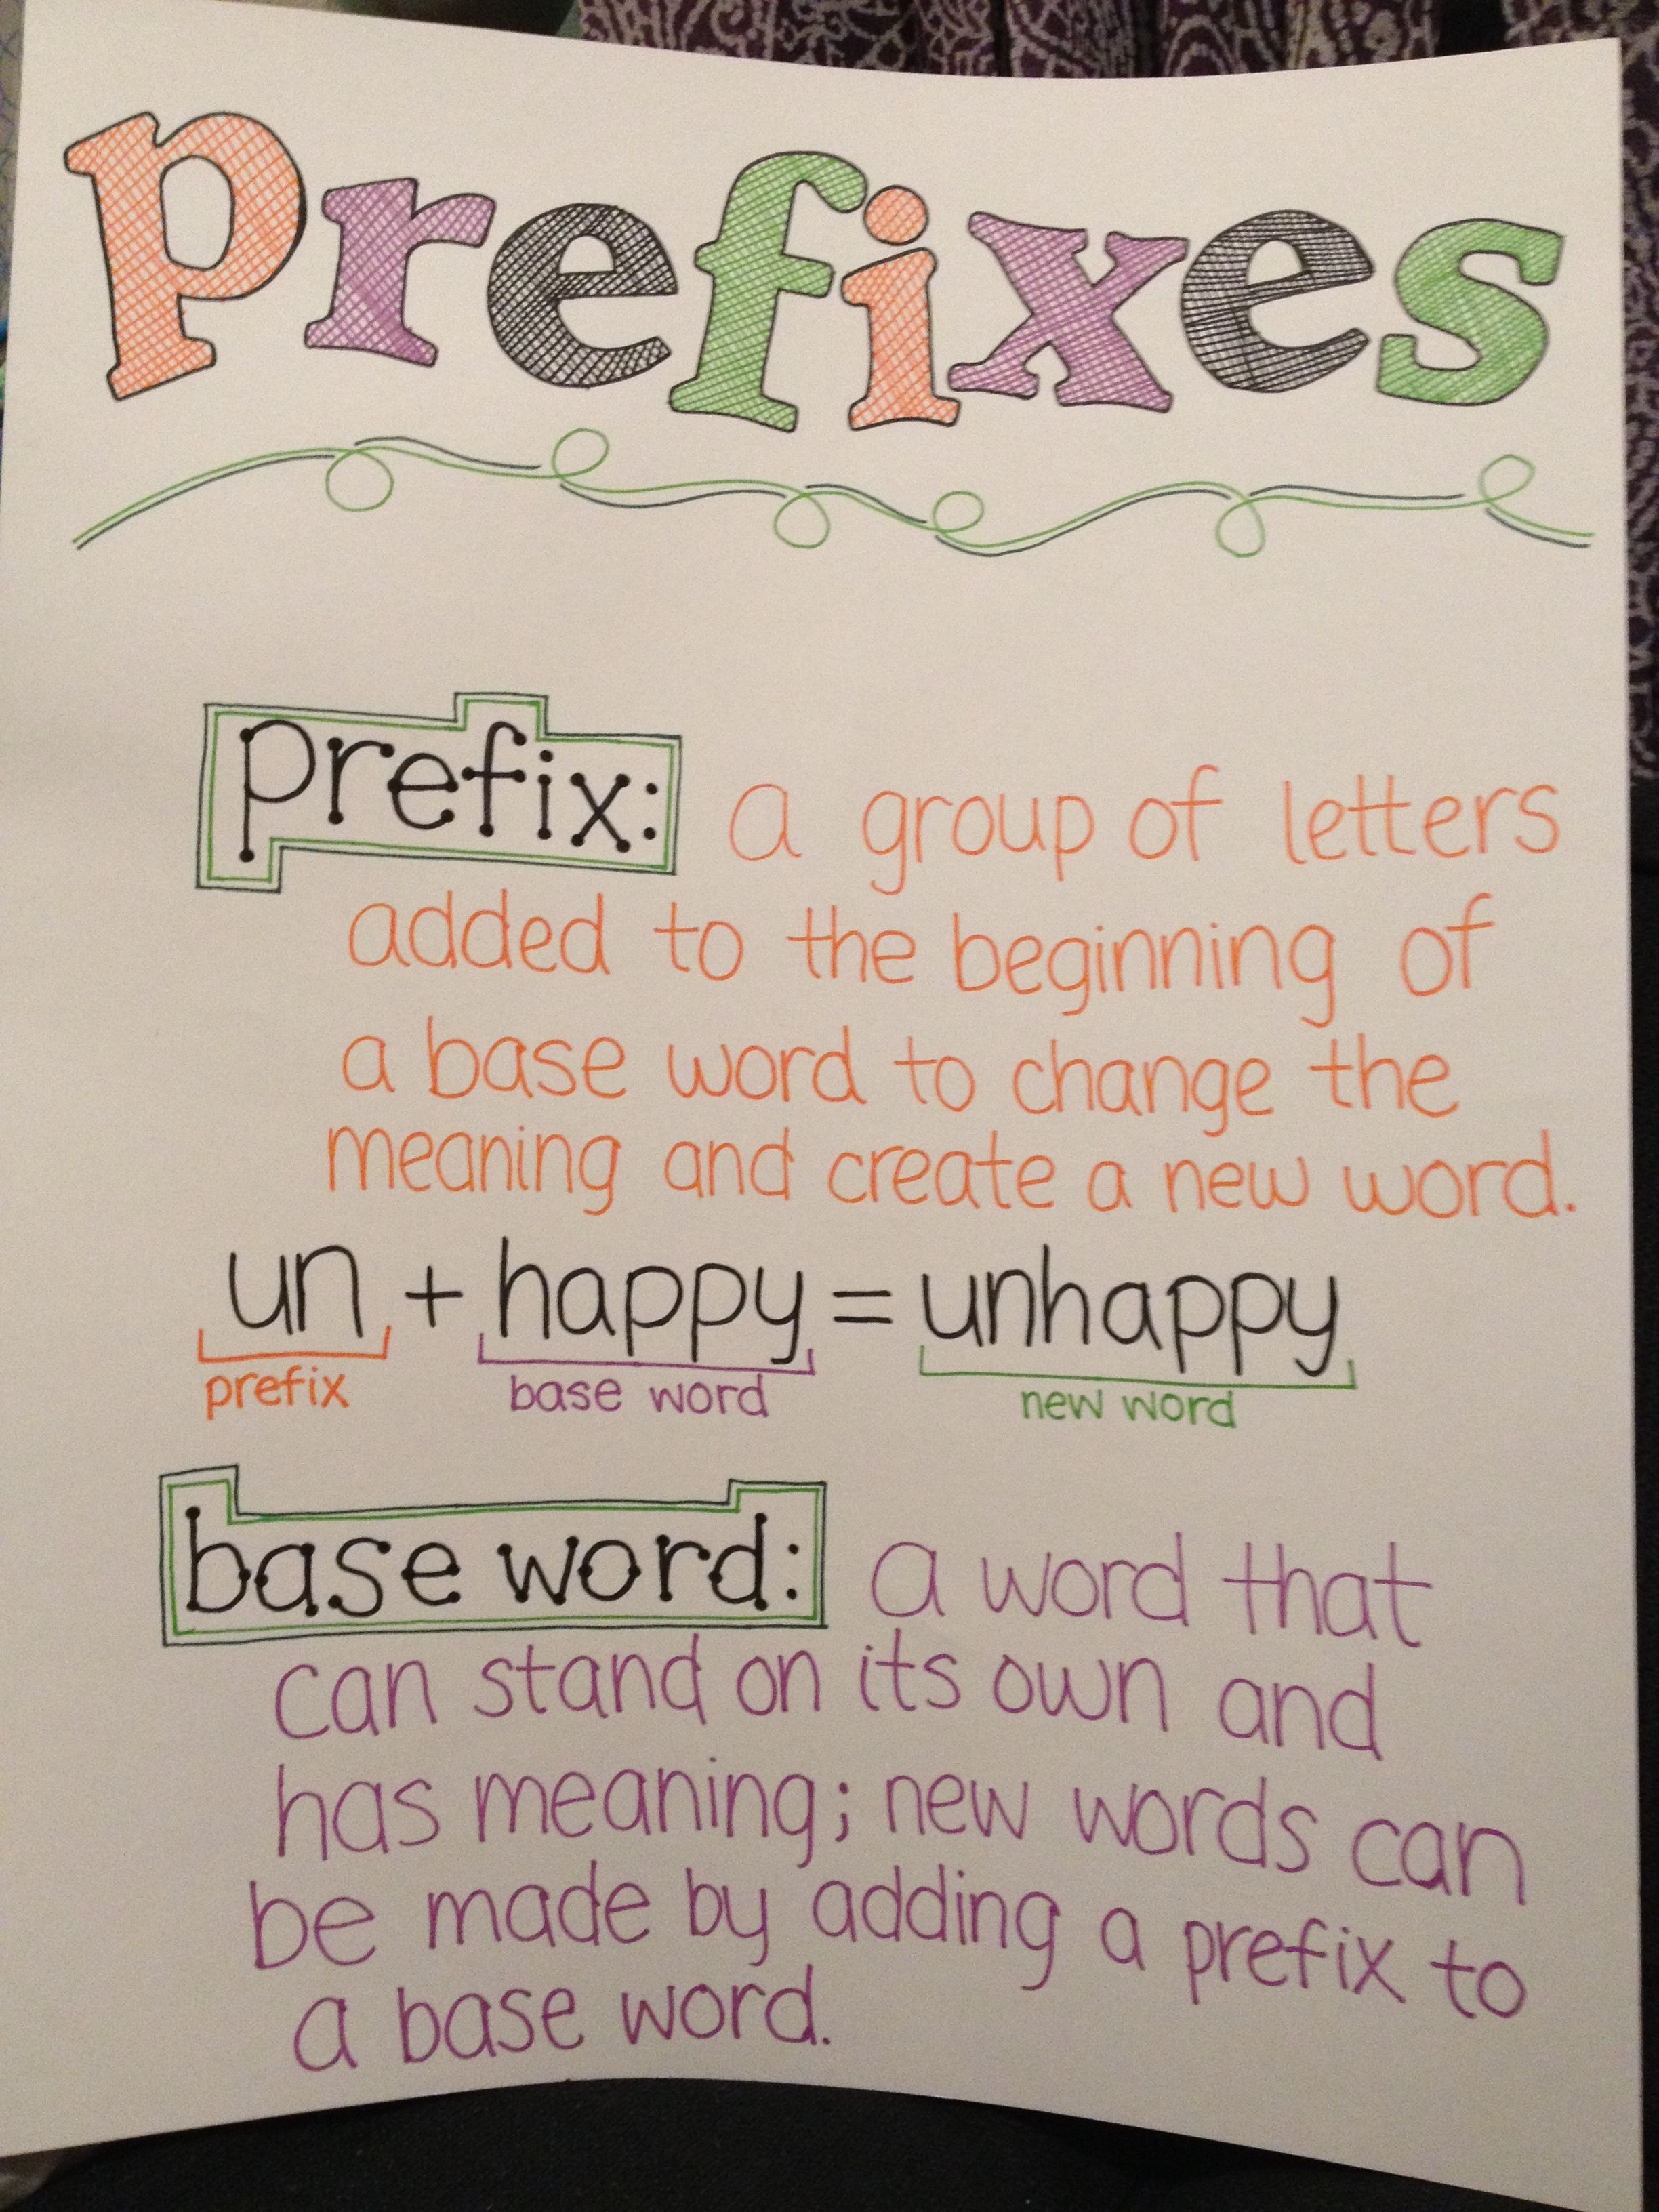 Prefix Anchor Chart Shows Students What Prefix Is And How Adding A Prefix To The Word Changes